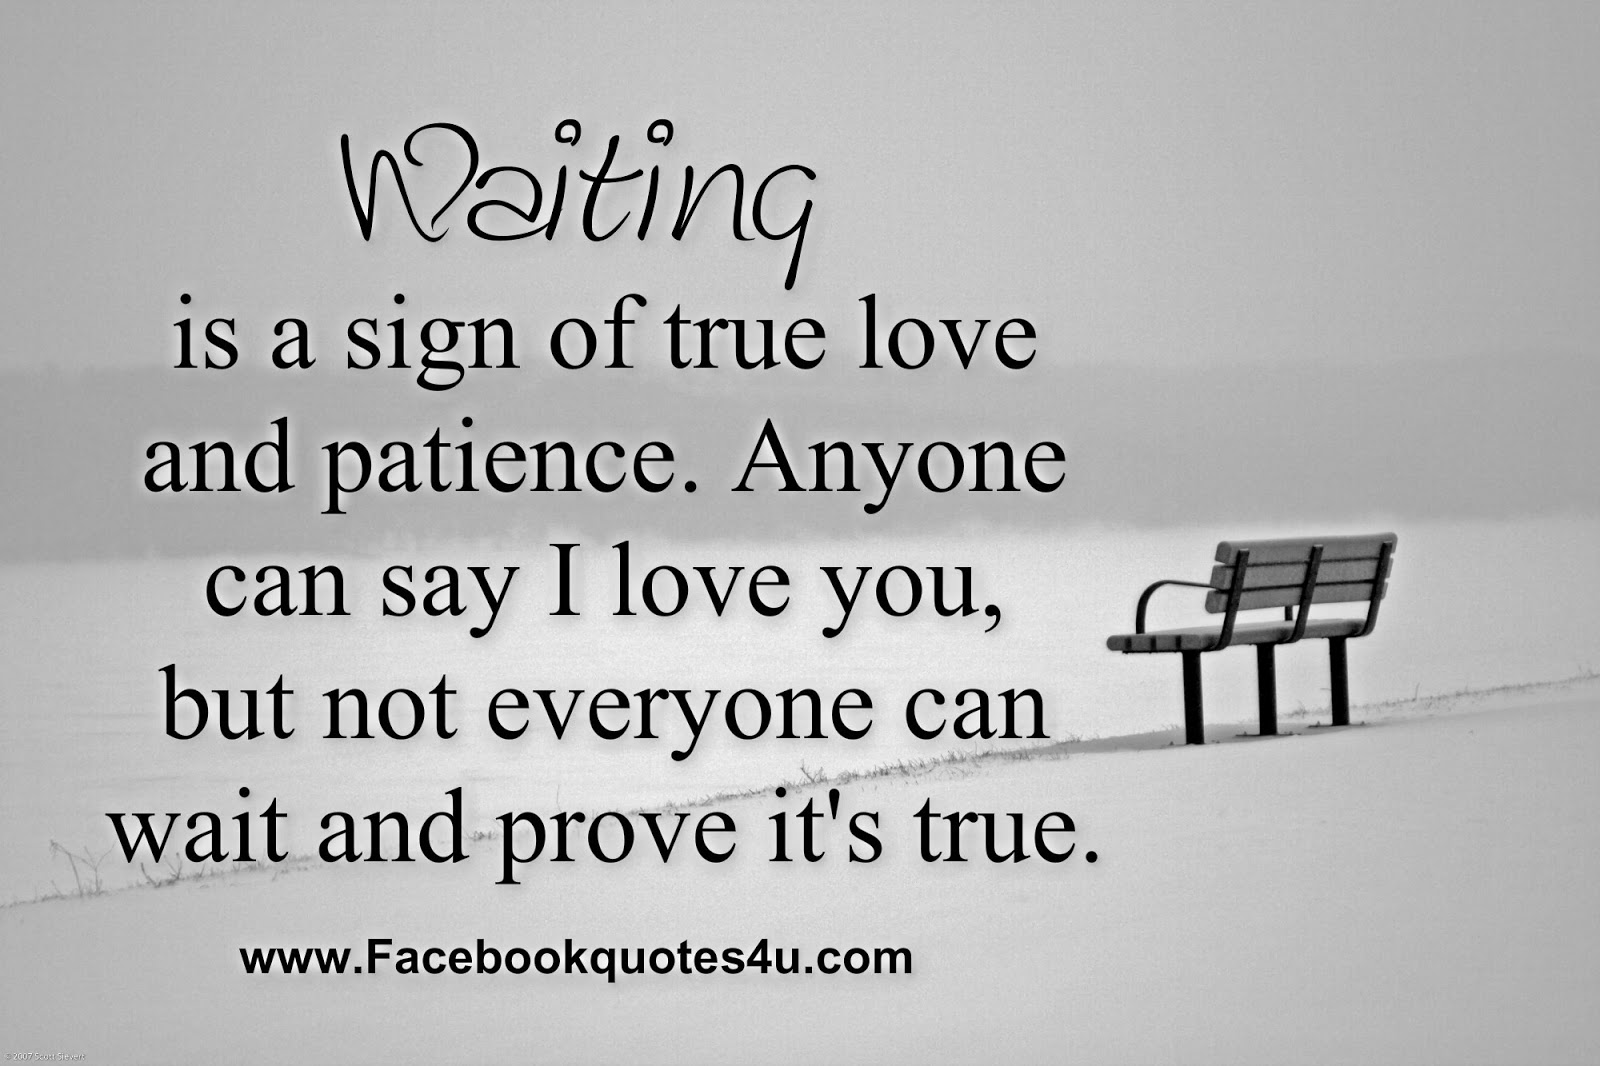 Quotes Single And Waiting Quotesgram